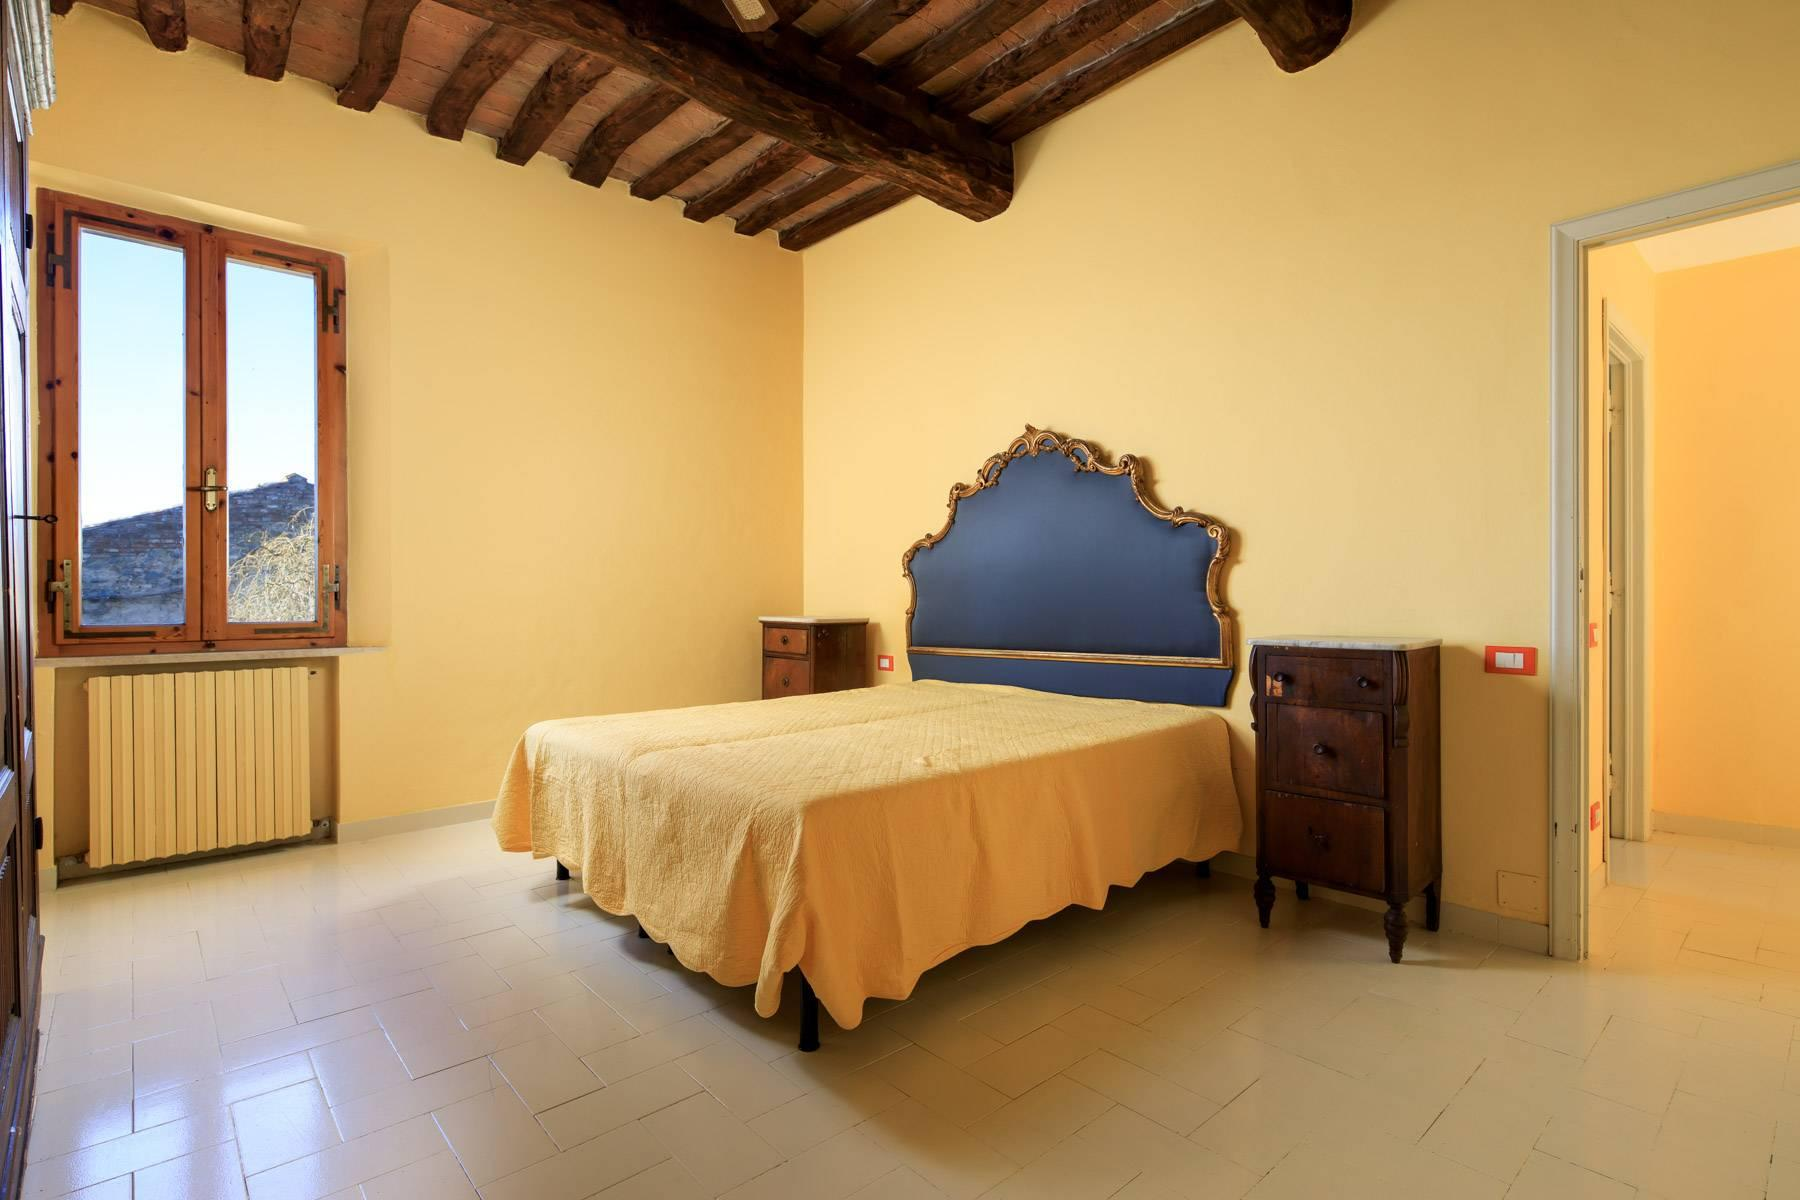 Wonderful historical Villa and country house close by Siena - 47